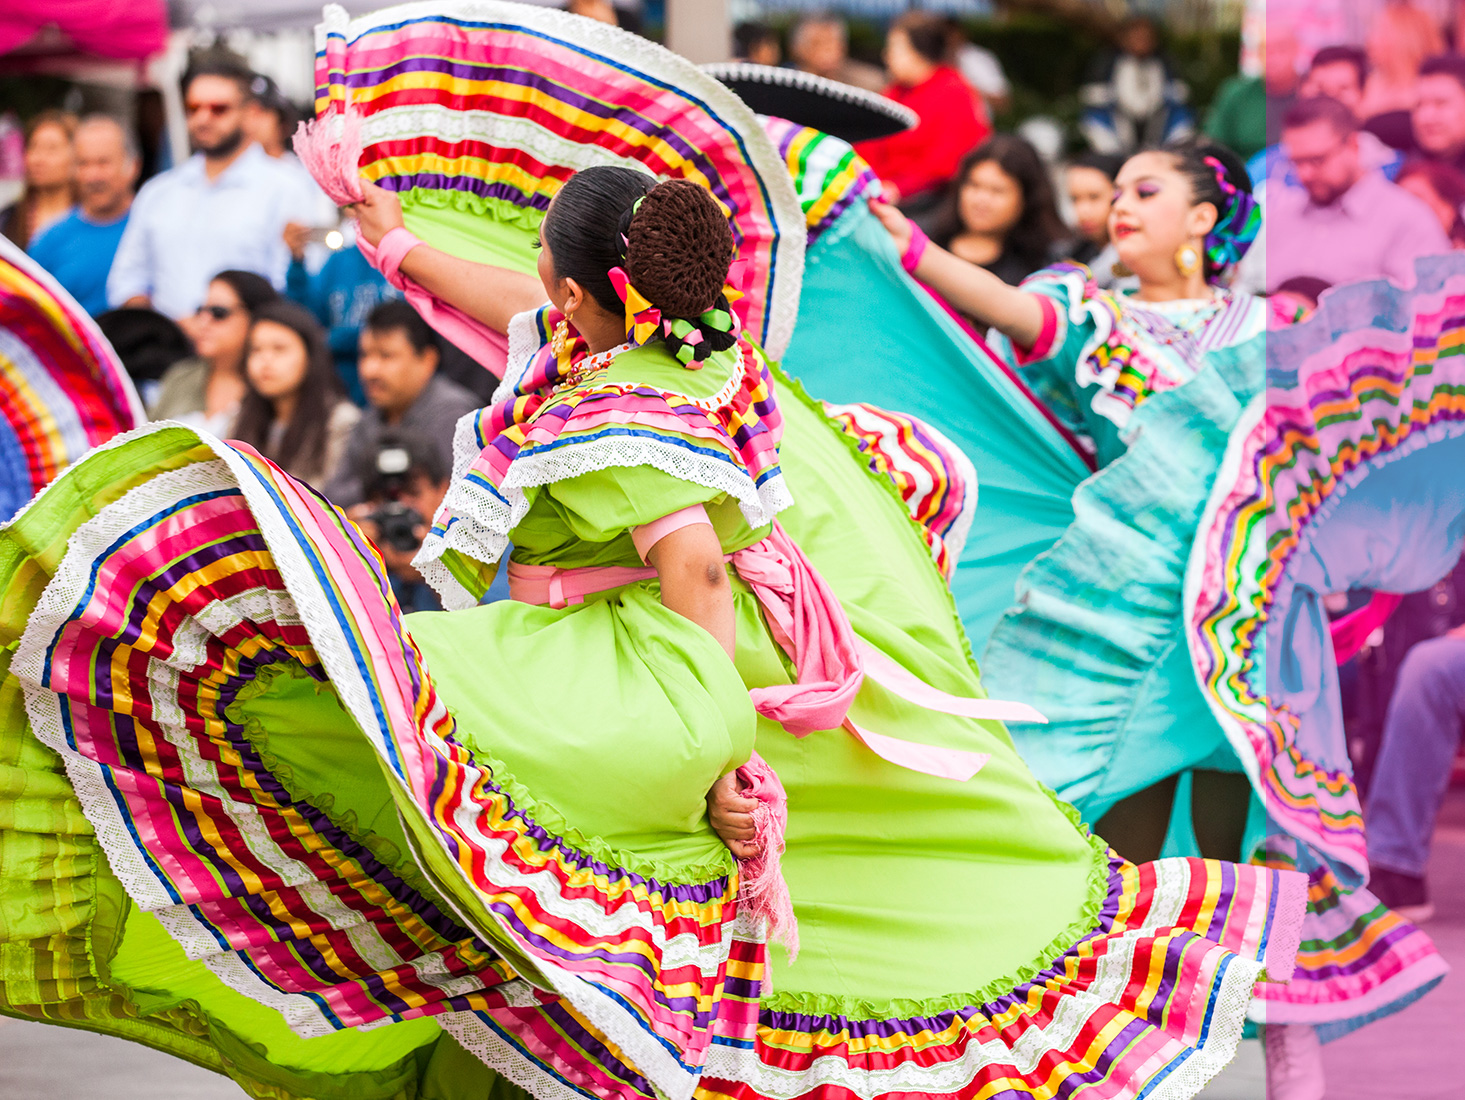 Colorfully dressed flamenco dancers perform before a crowd in downtown L.A.